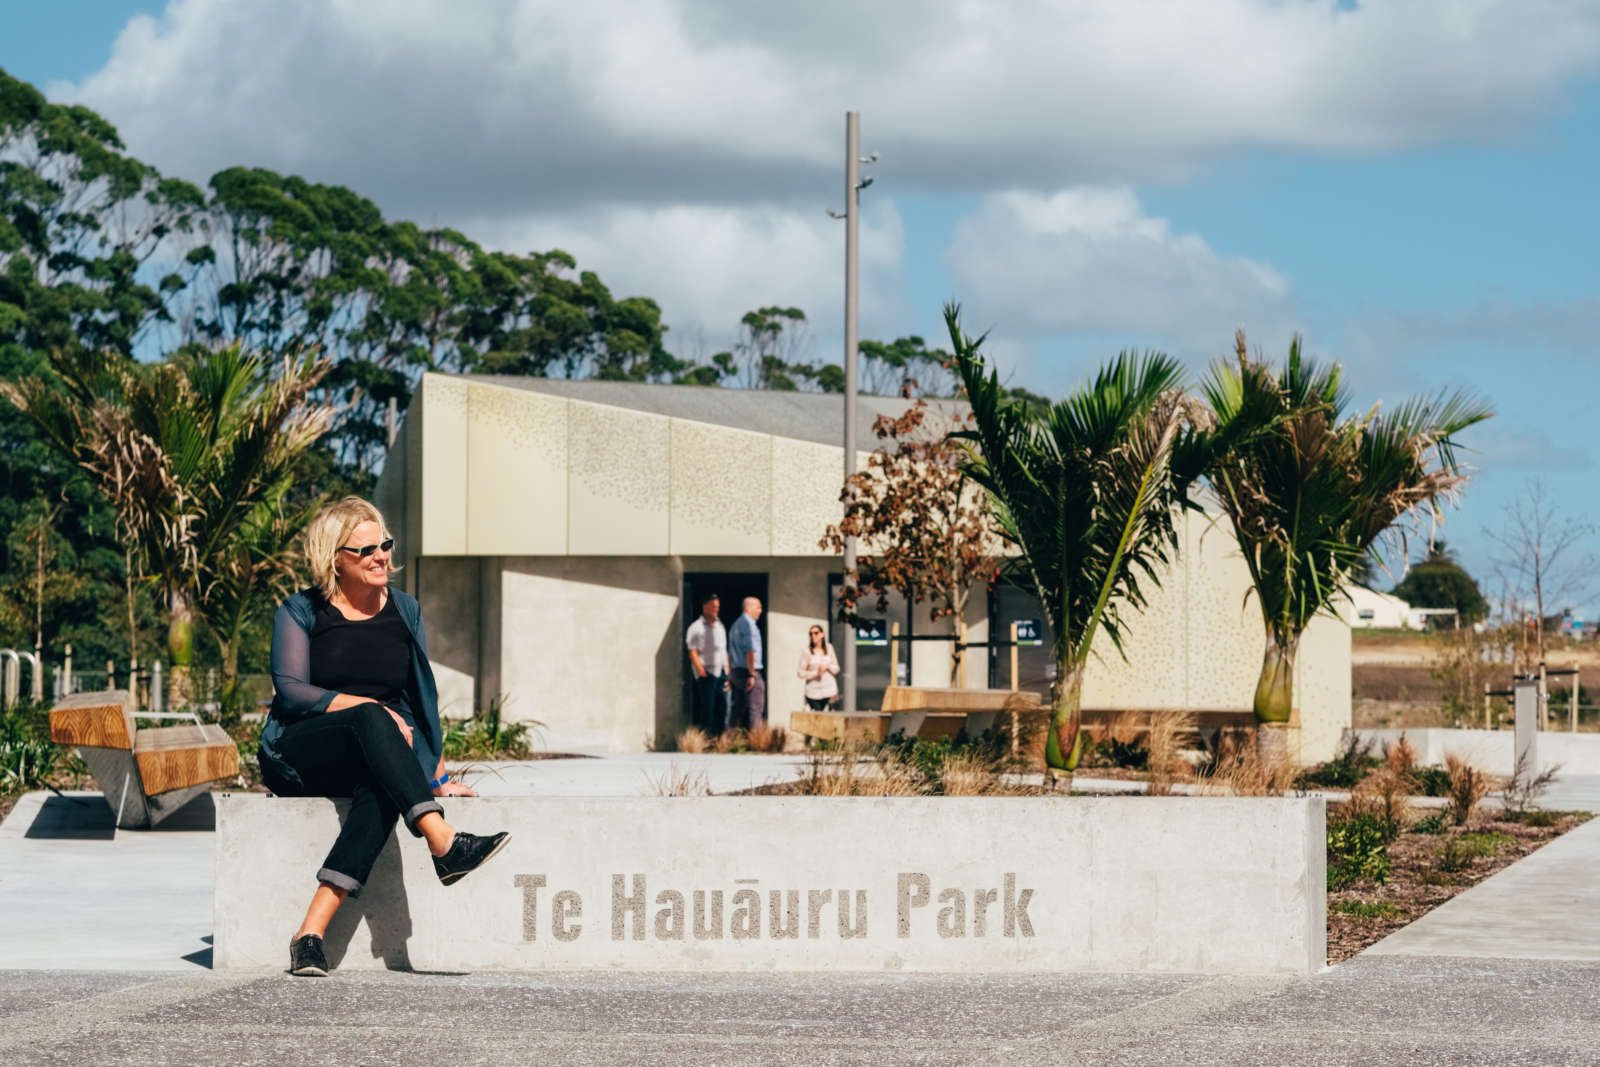 The 1.1ha park provides quality open space to support the future growth of Westgate.